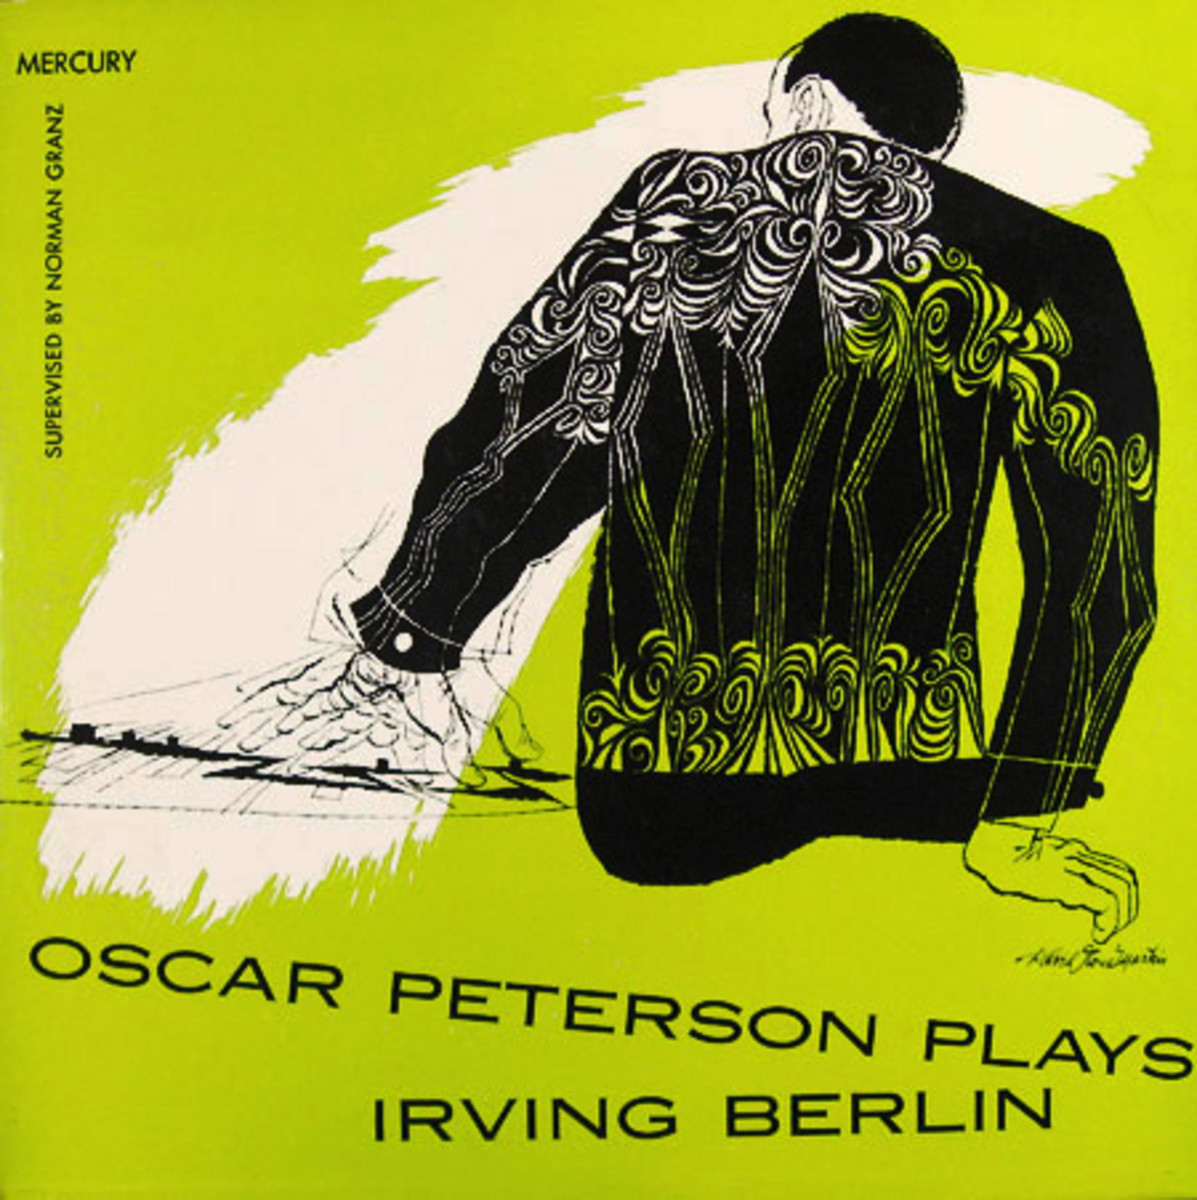 "Oscar Peterson ""Oscar Peterson Plays Irving Berlin"" Mercury Records MG C 604 7"" EP Record (1953) Album Cover Art by David Stone Martin"